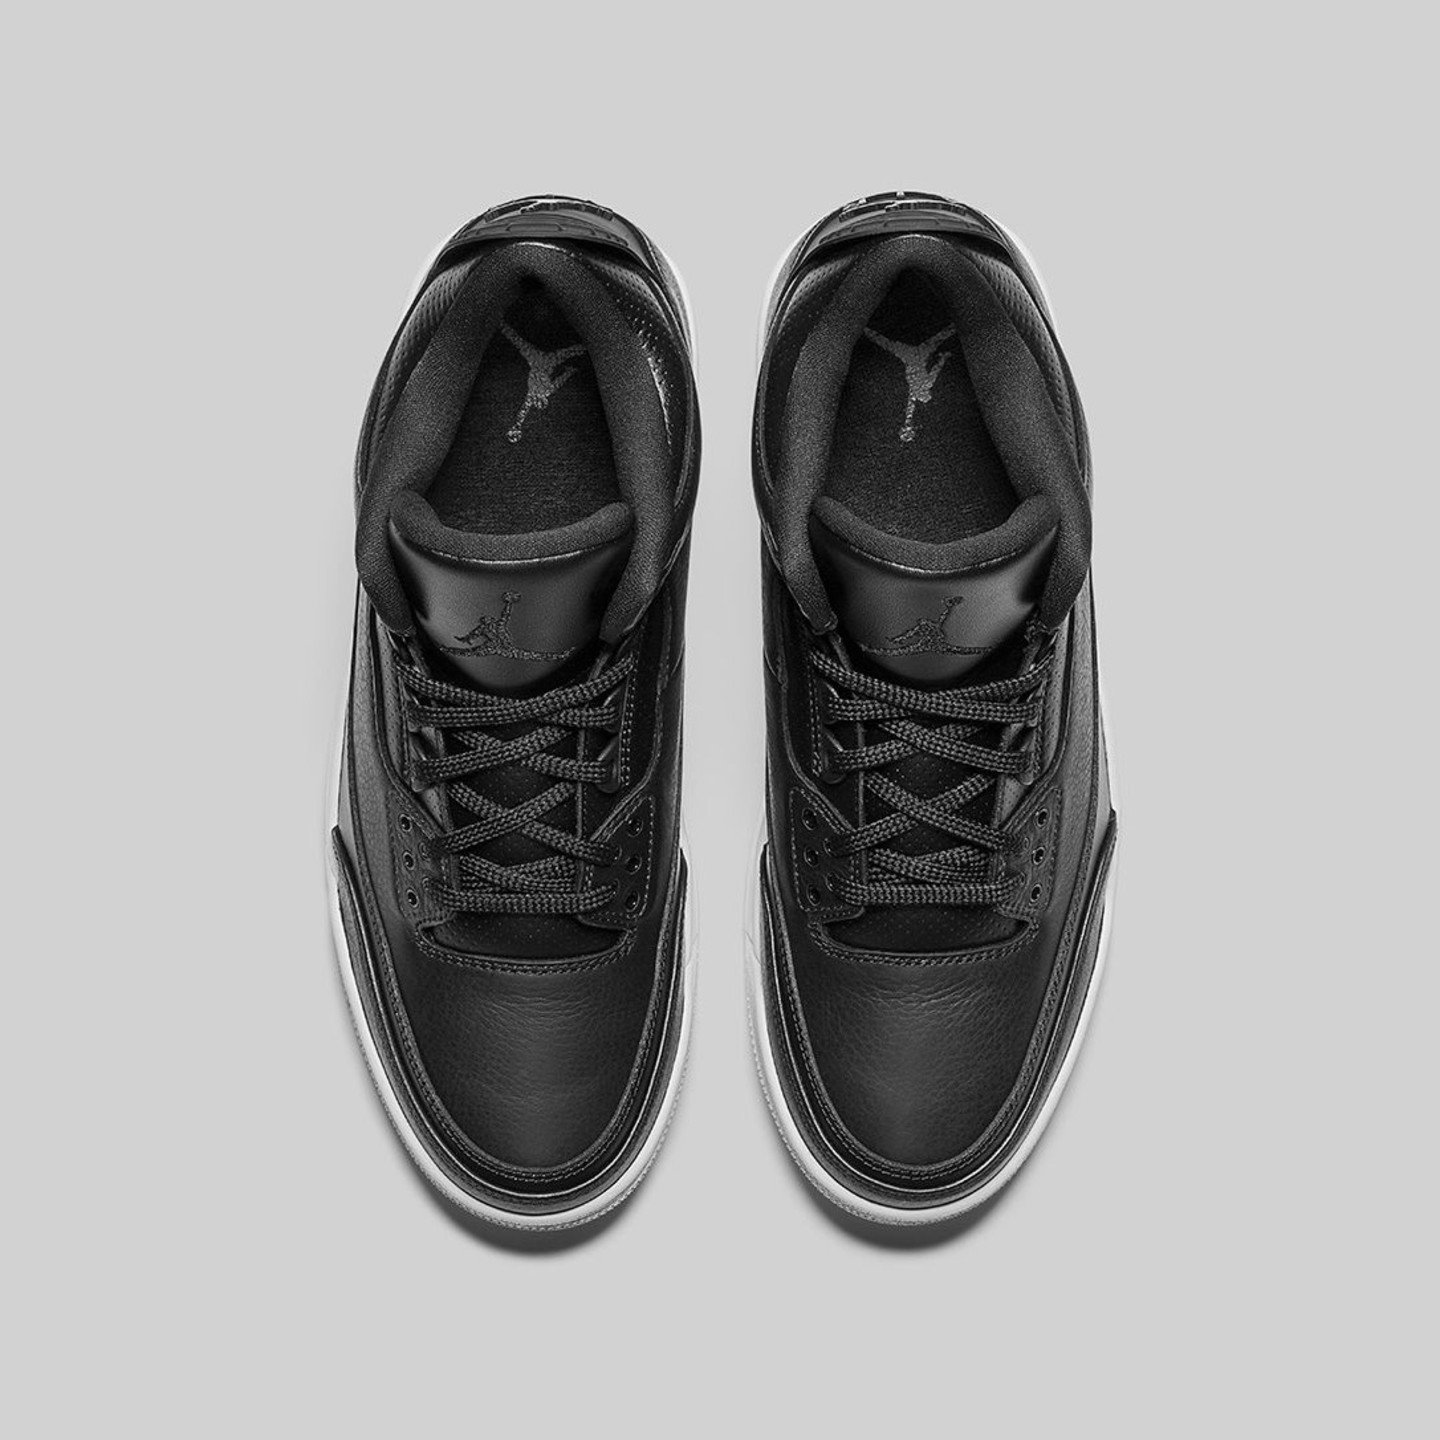 Jordan Air Jordan 3 Retro 'Cyber Monday' Black / White 136064-020-45